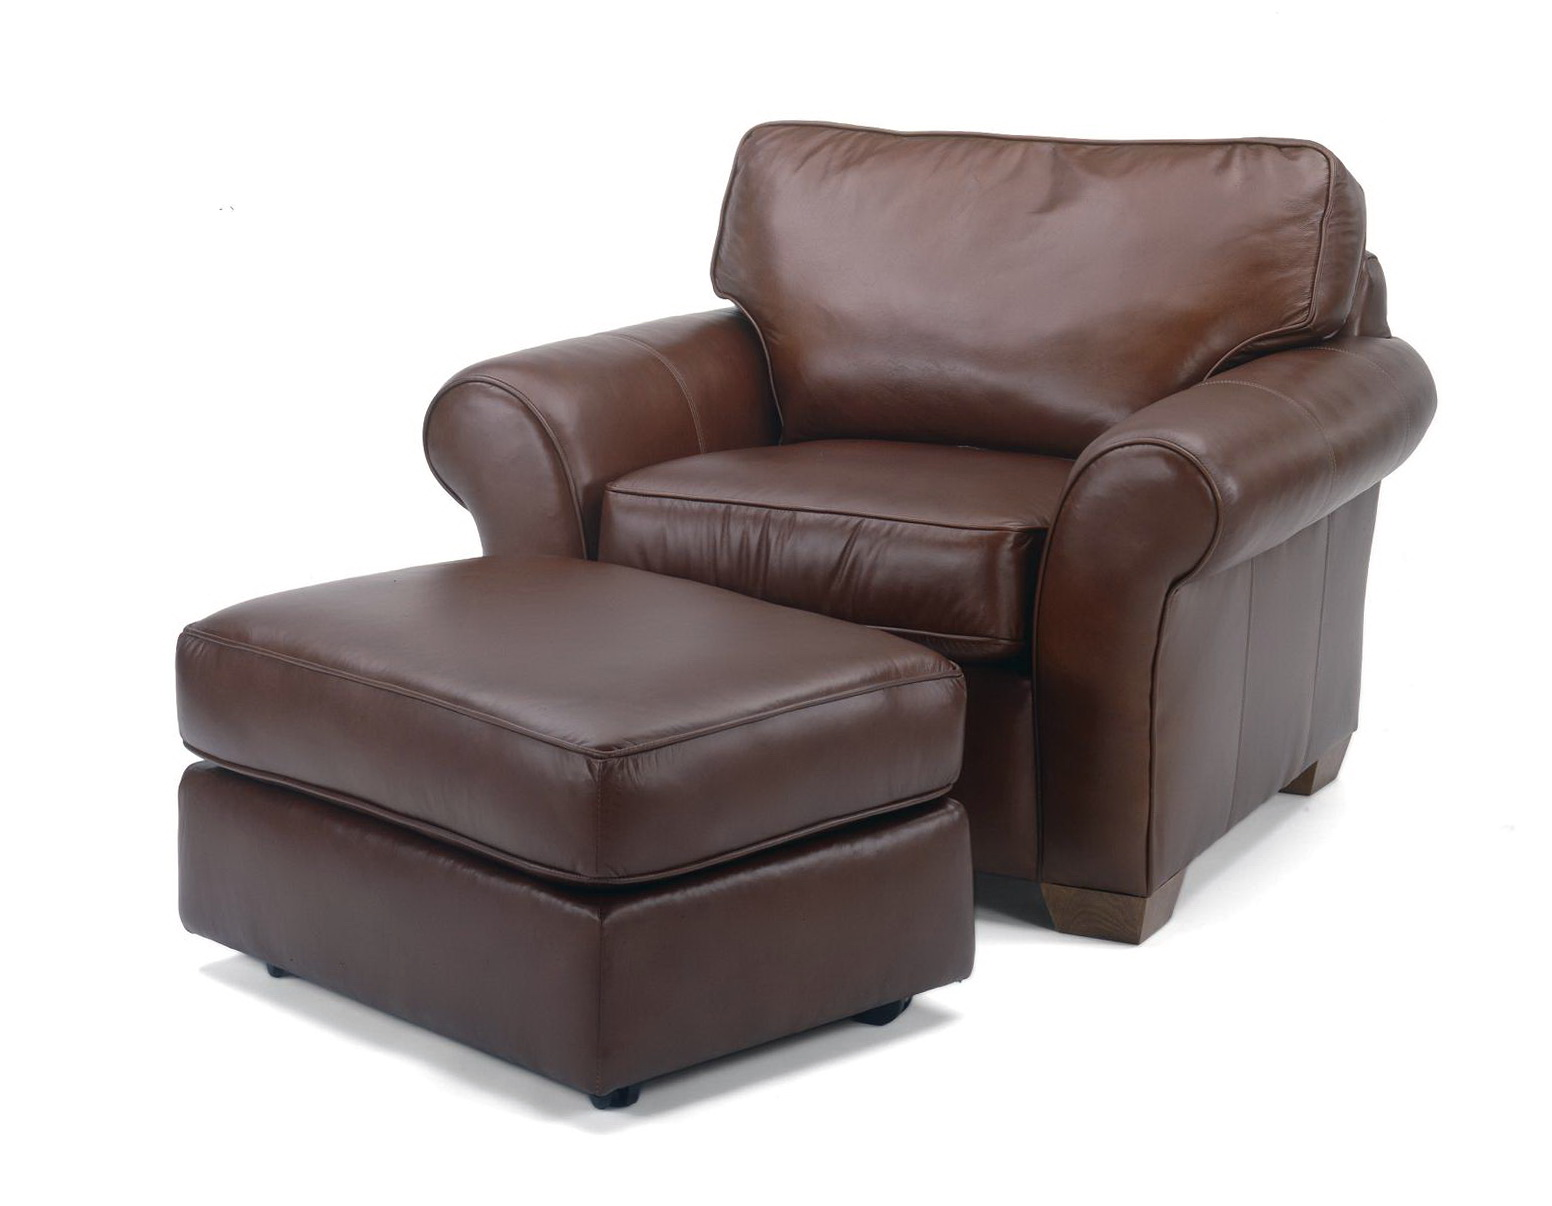 oversized leather chair with ottoman home design ideas. Black Bedroom Furniture Sets. Home Design Ideas